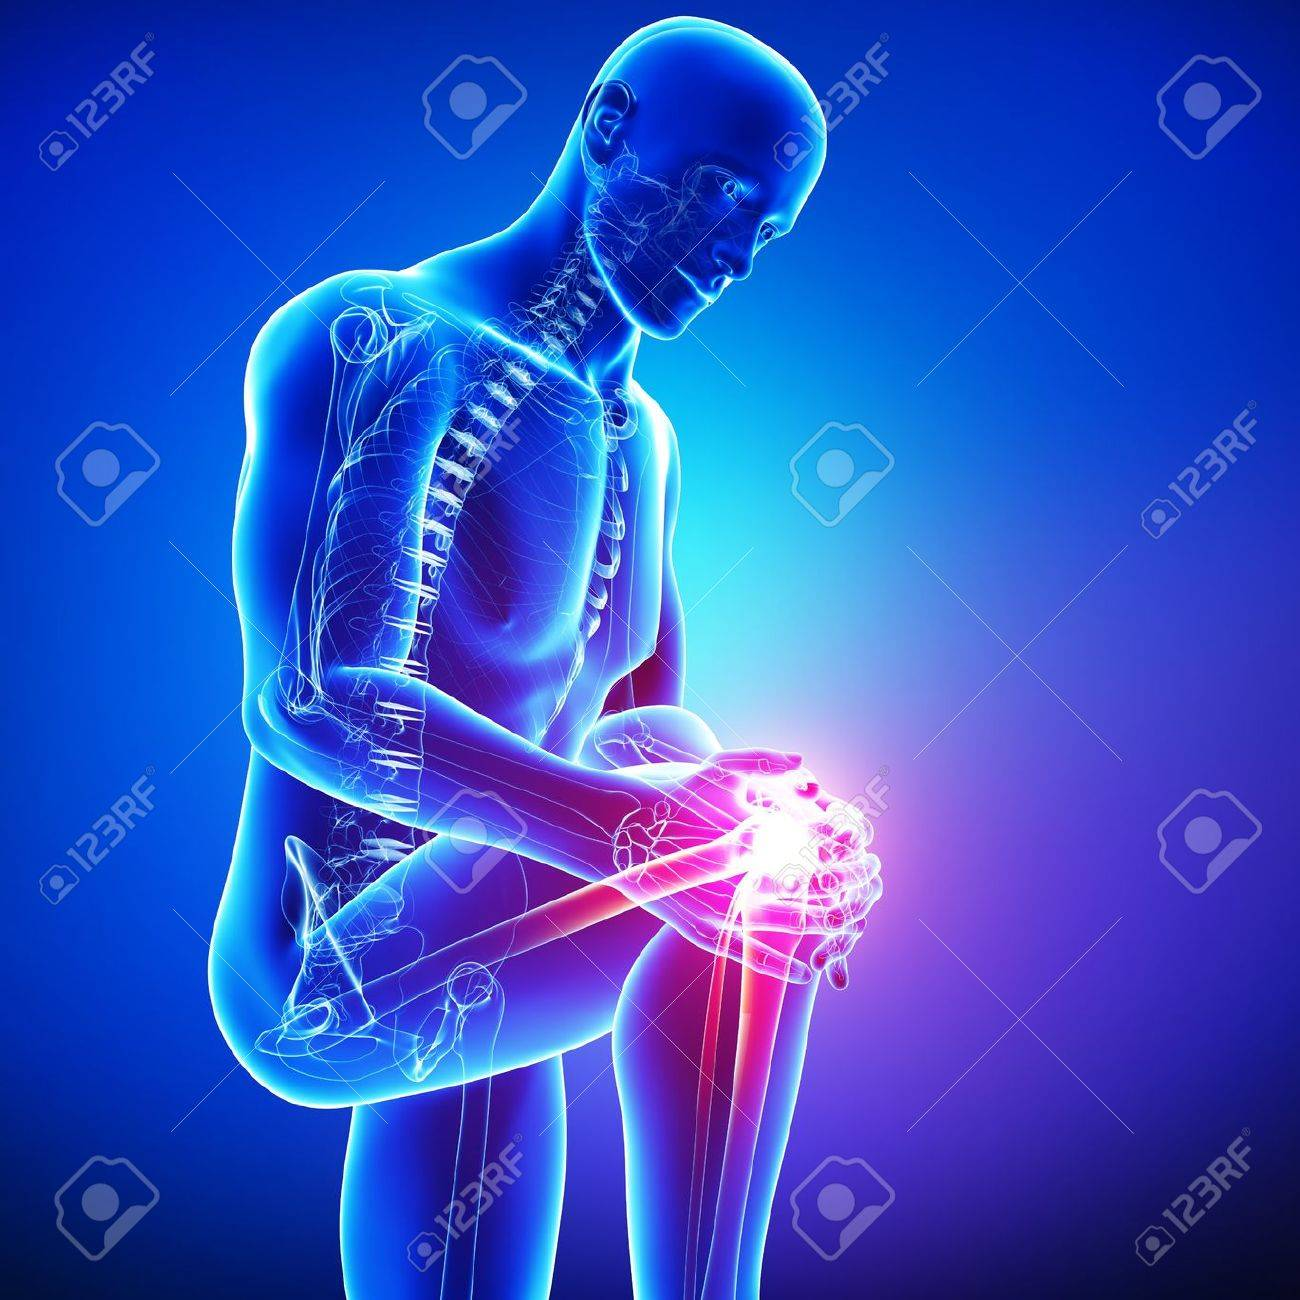 Anatomy Of Male Knee Pain In Blue Stock Photo, Picture And Royalty ...